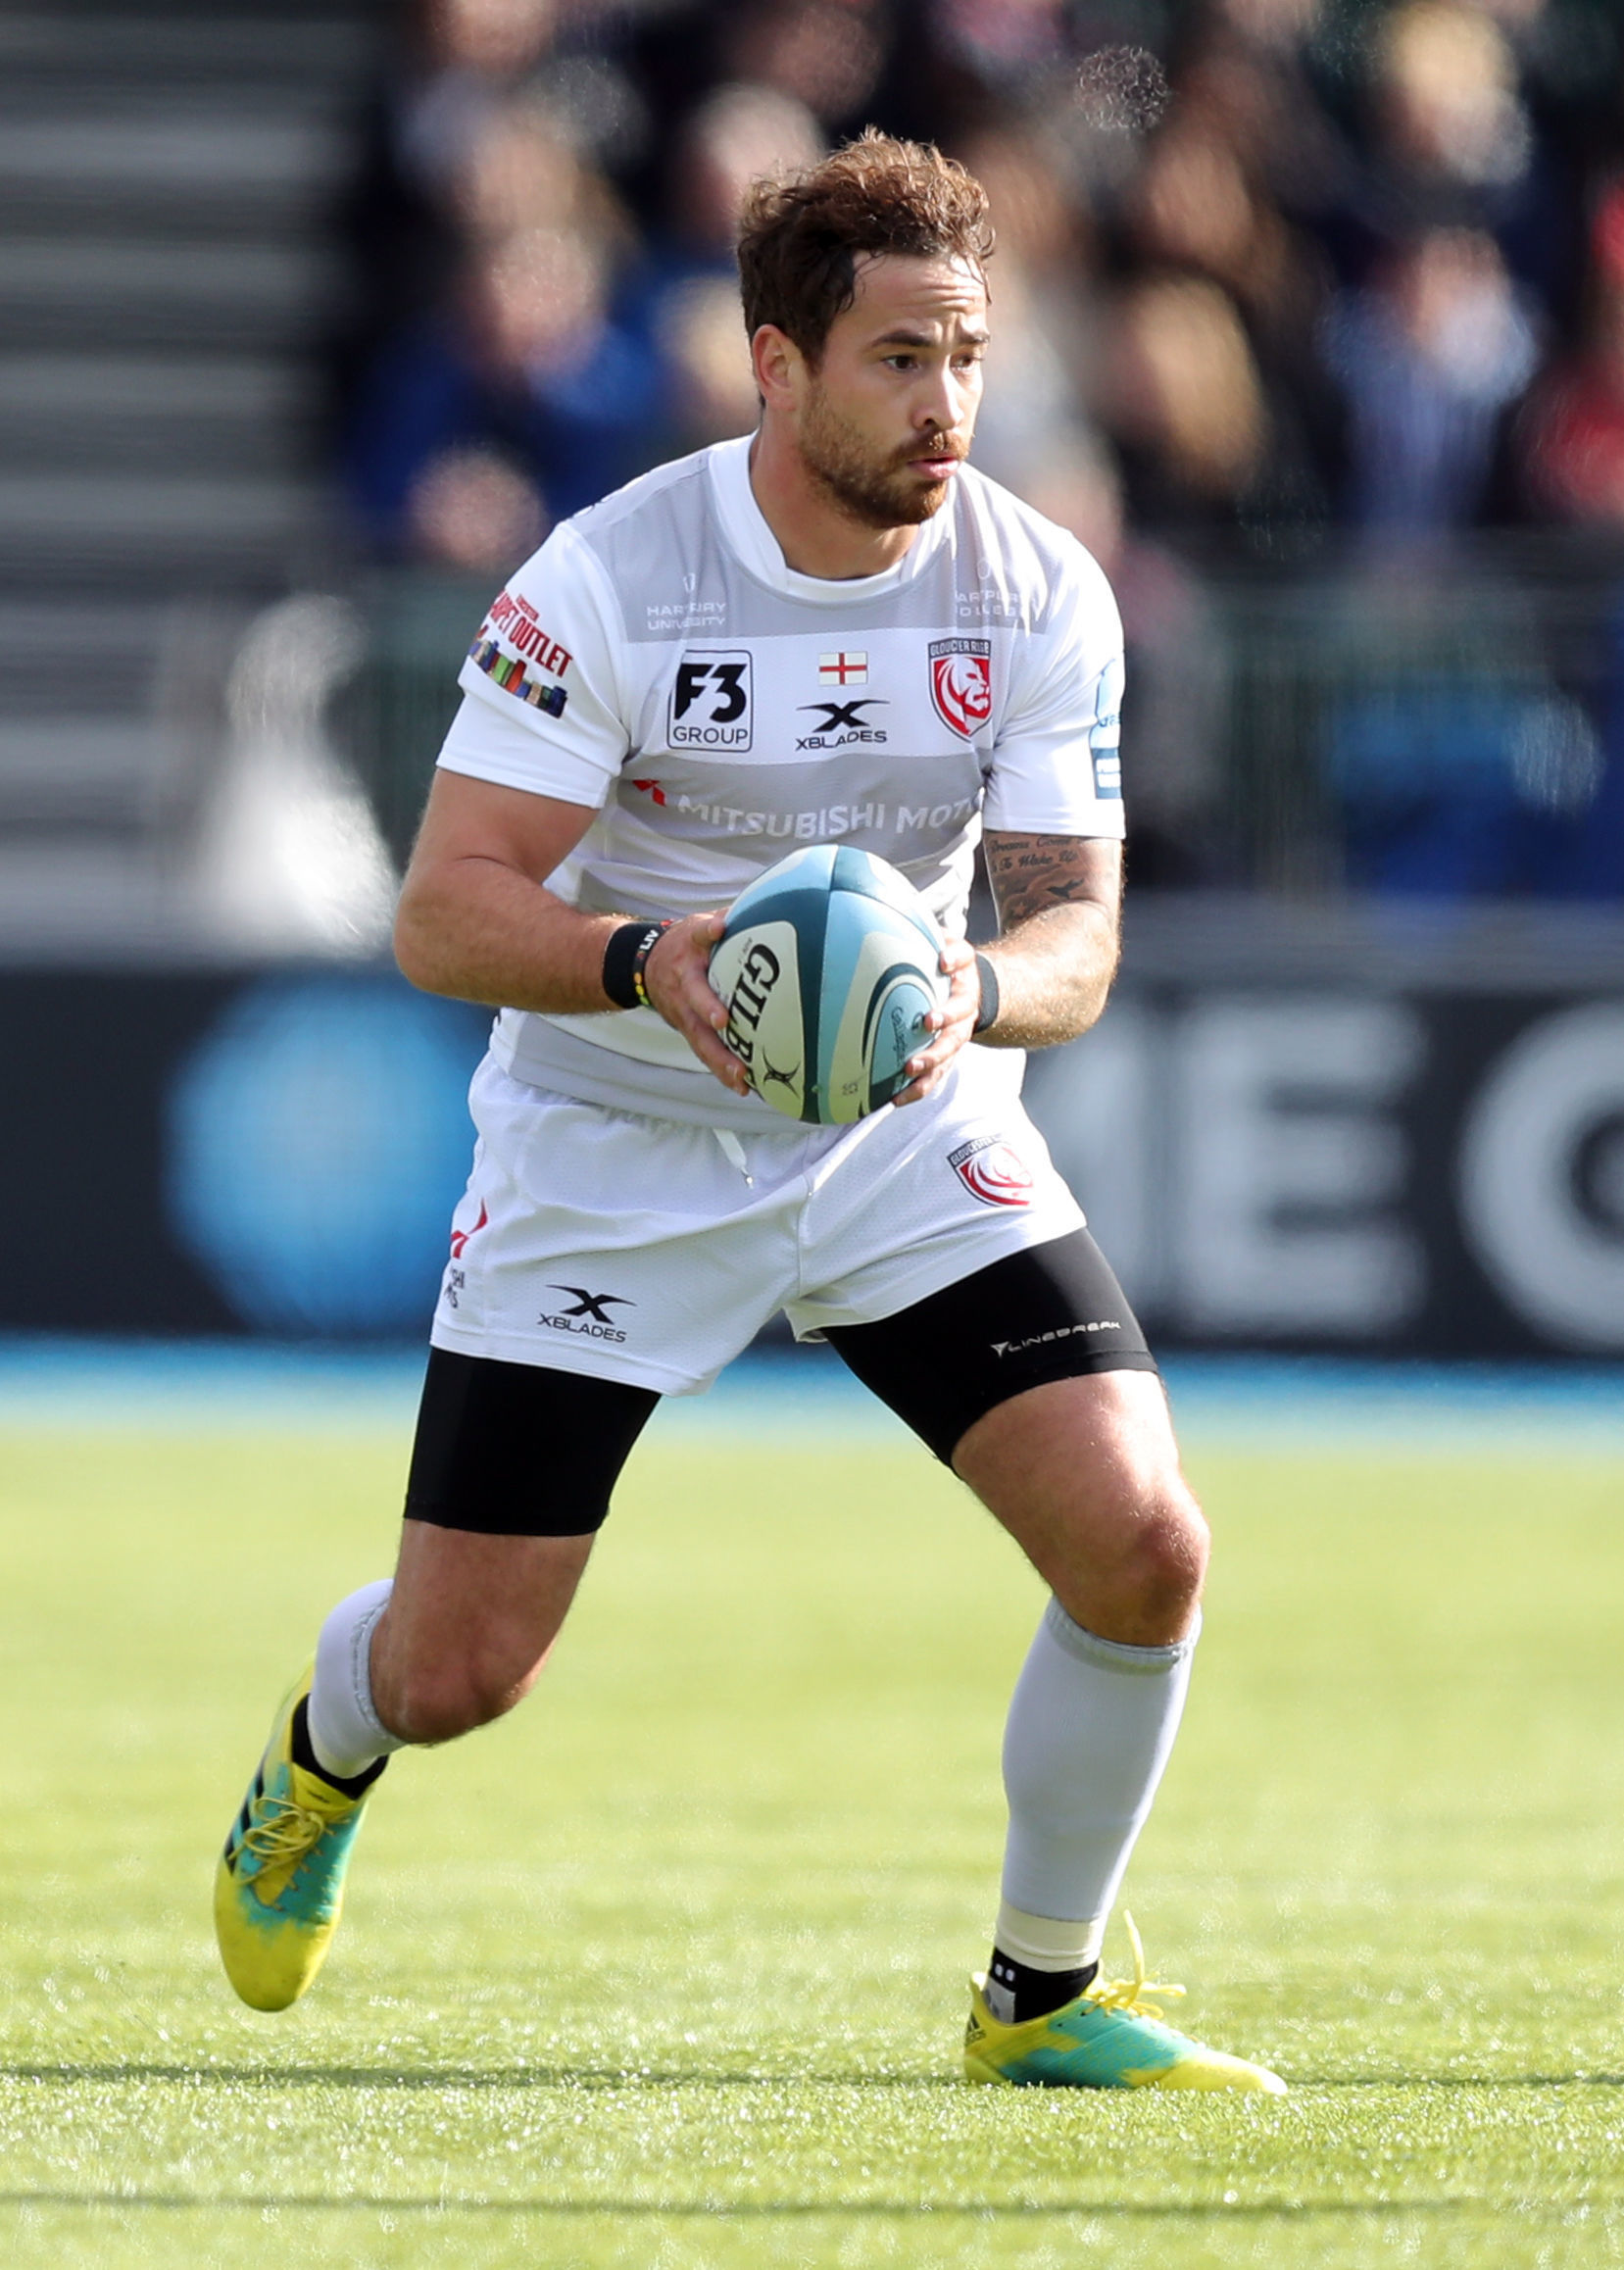 Gloucester Rugby's Danny Cipriani in action during the Gallagher Premiership match at Allianz Park, London. PRESS ASSOCIATION Photo. Picture date: Sunday September 23, 2018. See PA story RUGBYU Saracens. Photo credit should read: Andrew Matthews/PA Wi